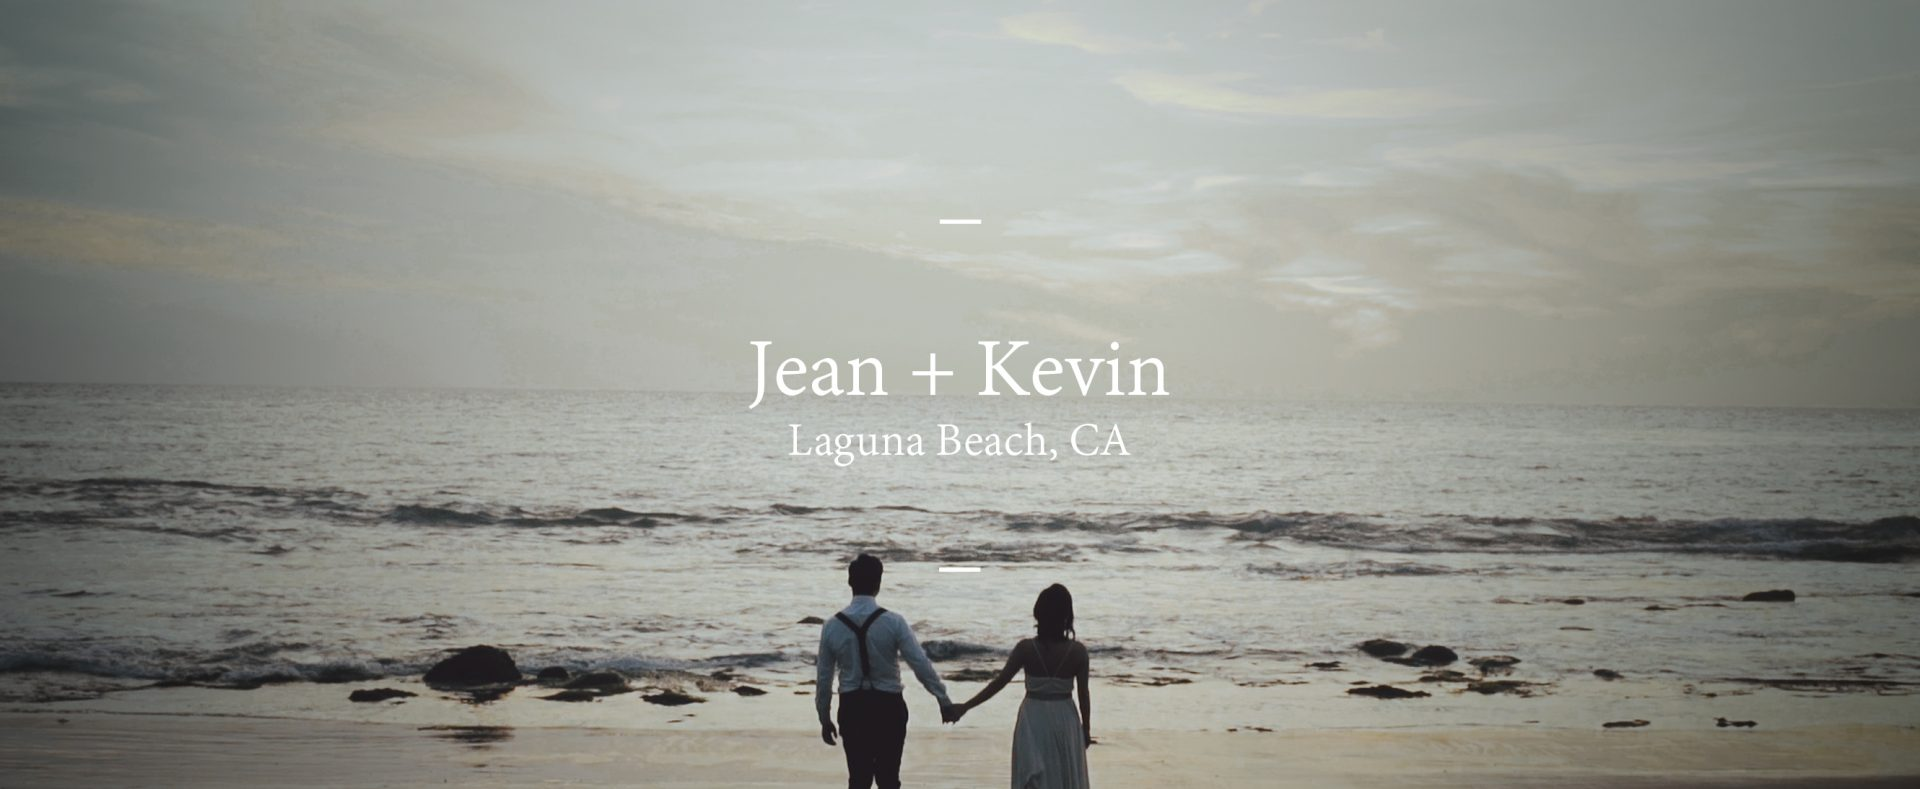 Jean + Kevin | Laguna Beach, California